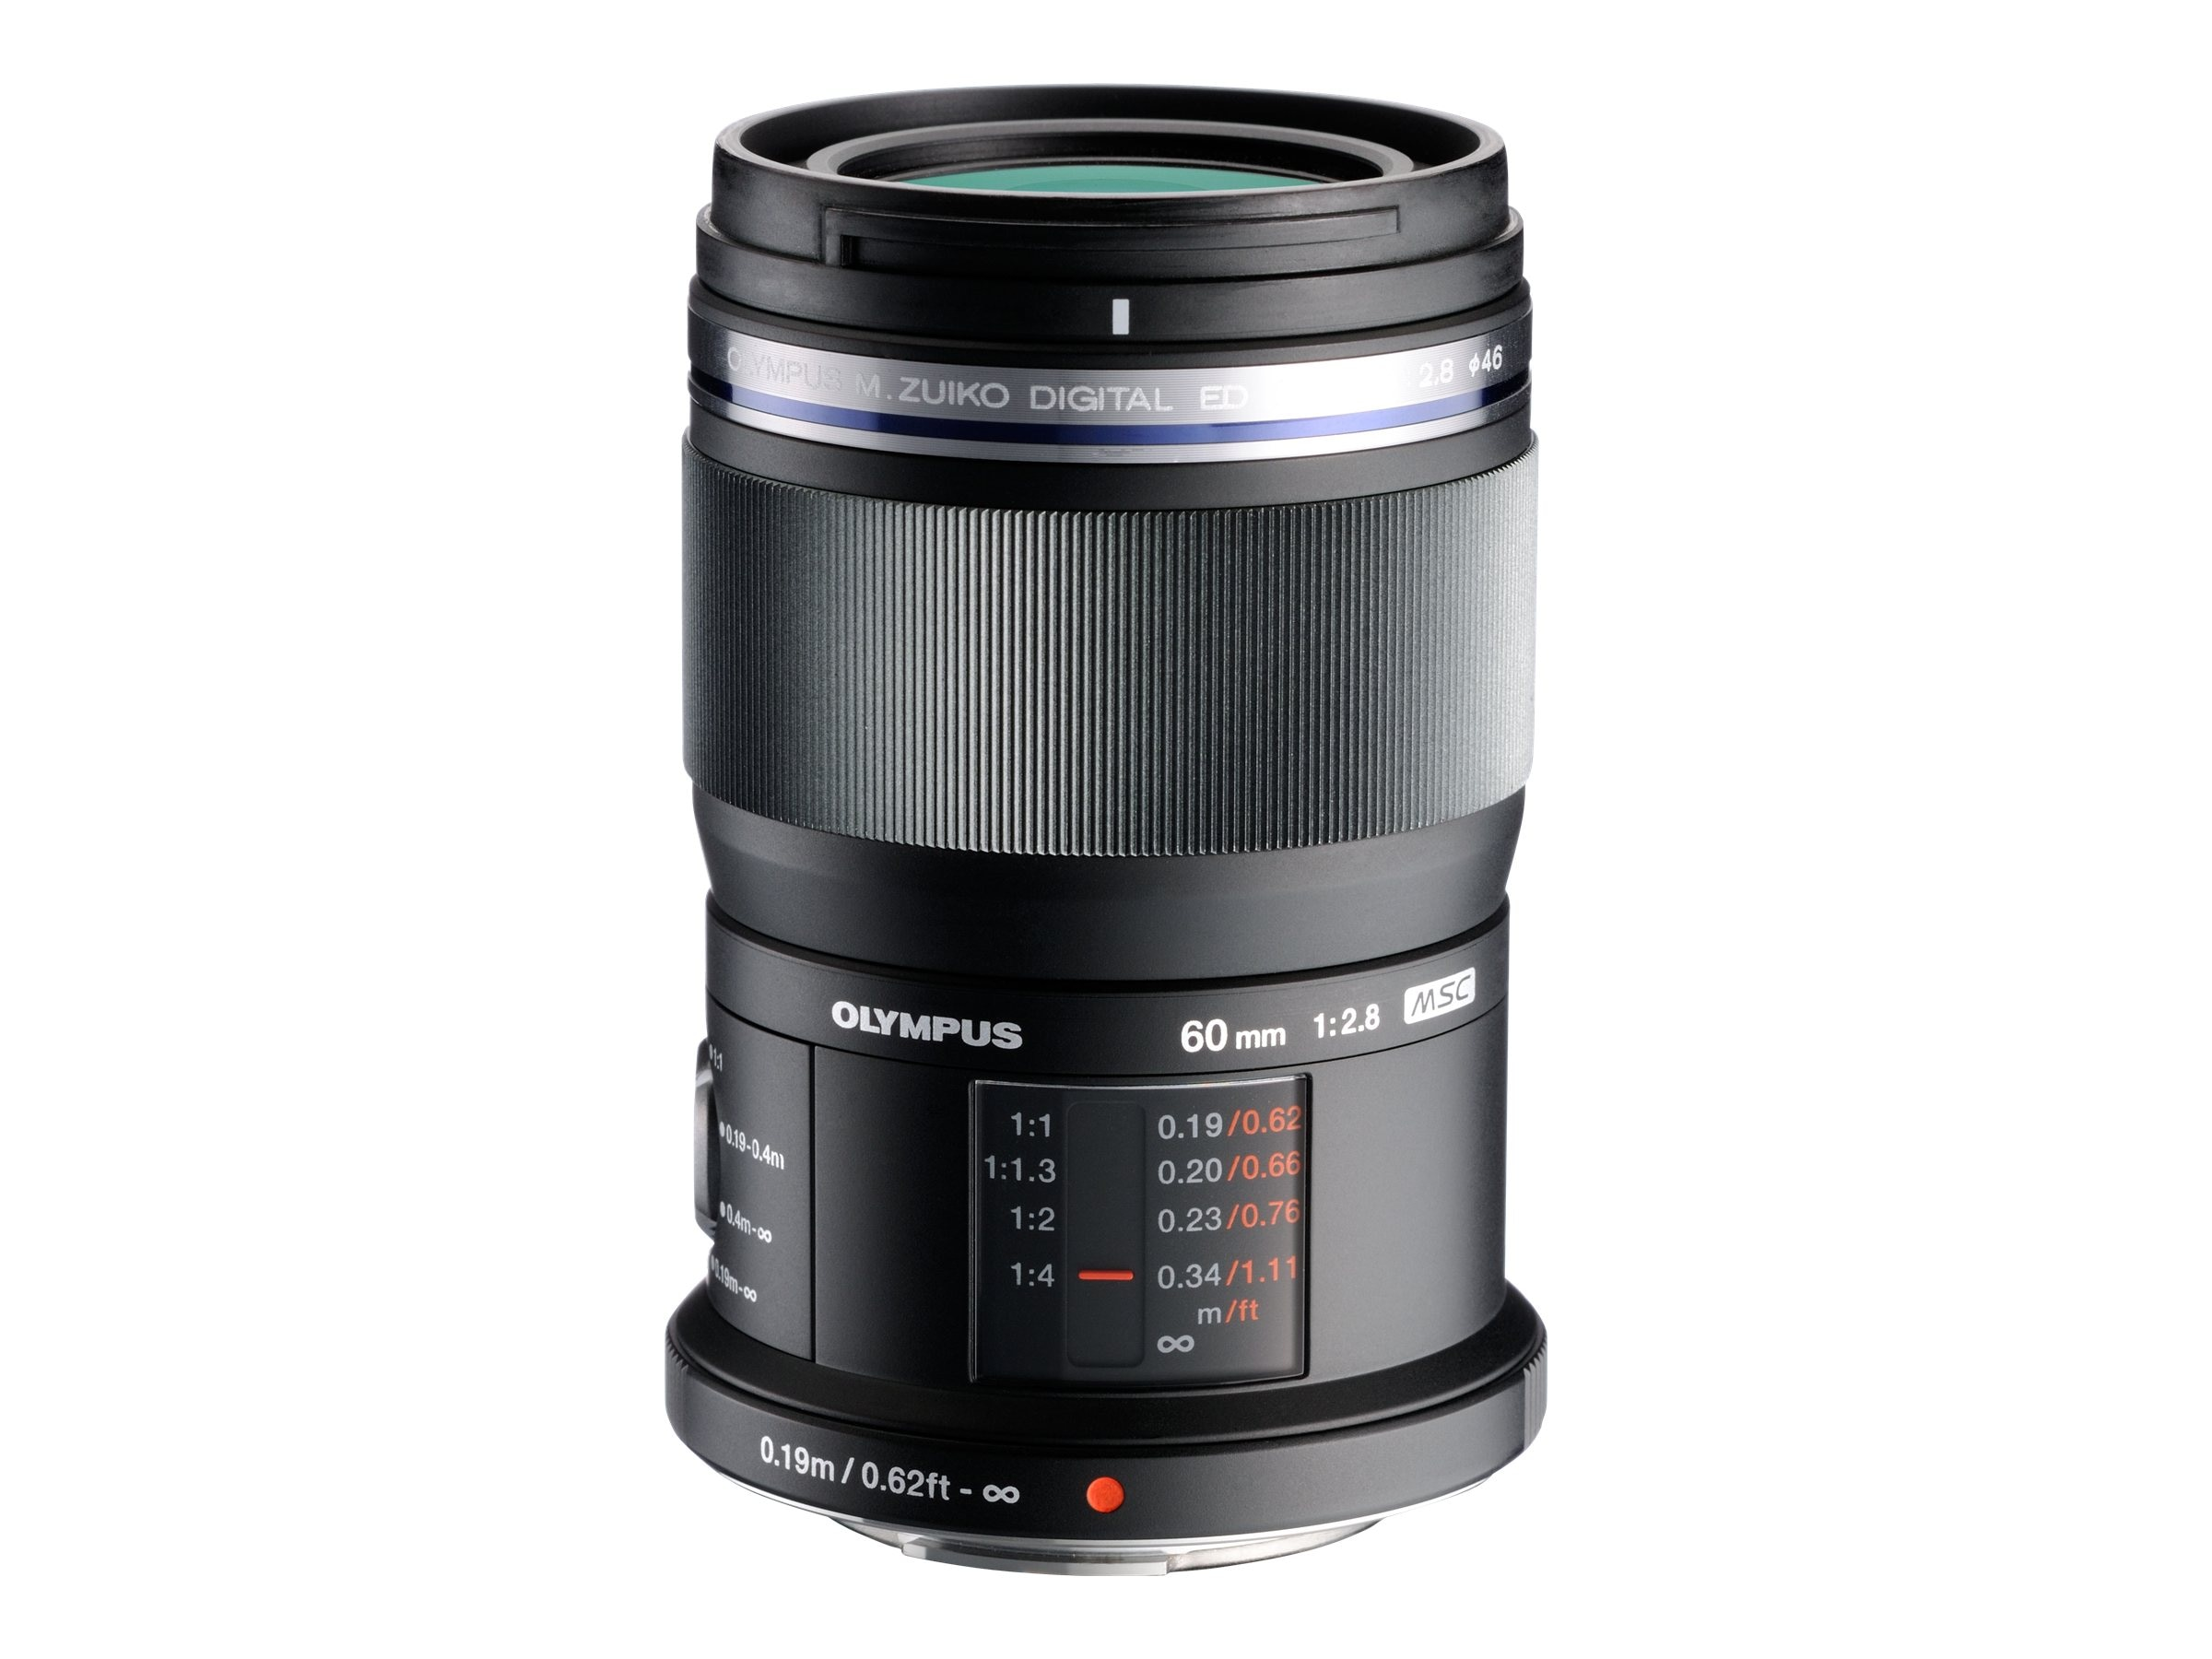 Olympus M.Zuiko Digital ED 60mm f 2.8 Macro Lens, V312010BU000, 14870091, Camera & Camcorder Lenses & Filters